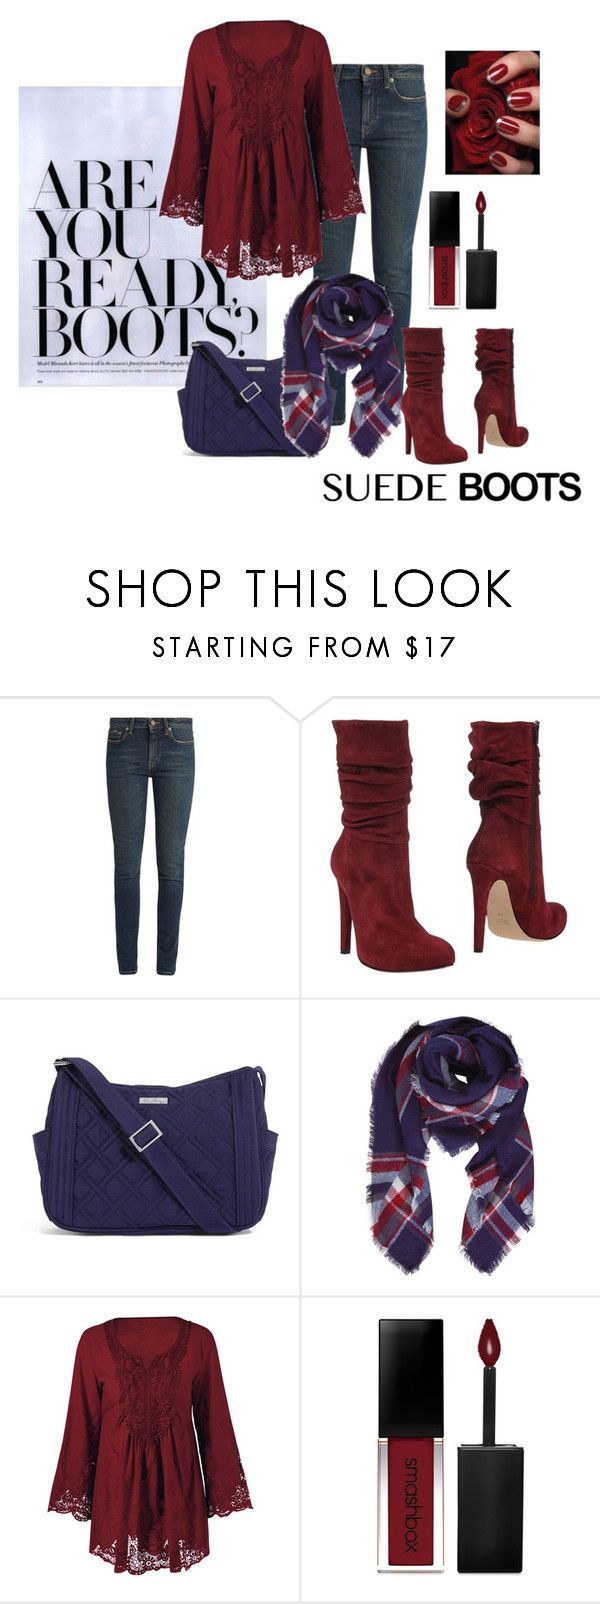 """""""Boots"""" by janie-xox ❤ liked on Polyvore featuring Yves Saint Laurent, Jolie By Edward Spiers, Vera Bradley, Humble Chic and Smashbox"""